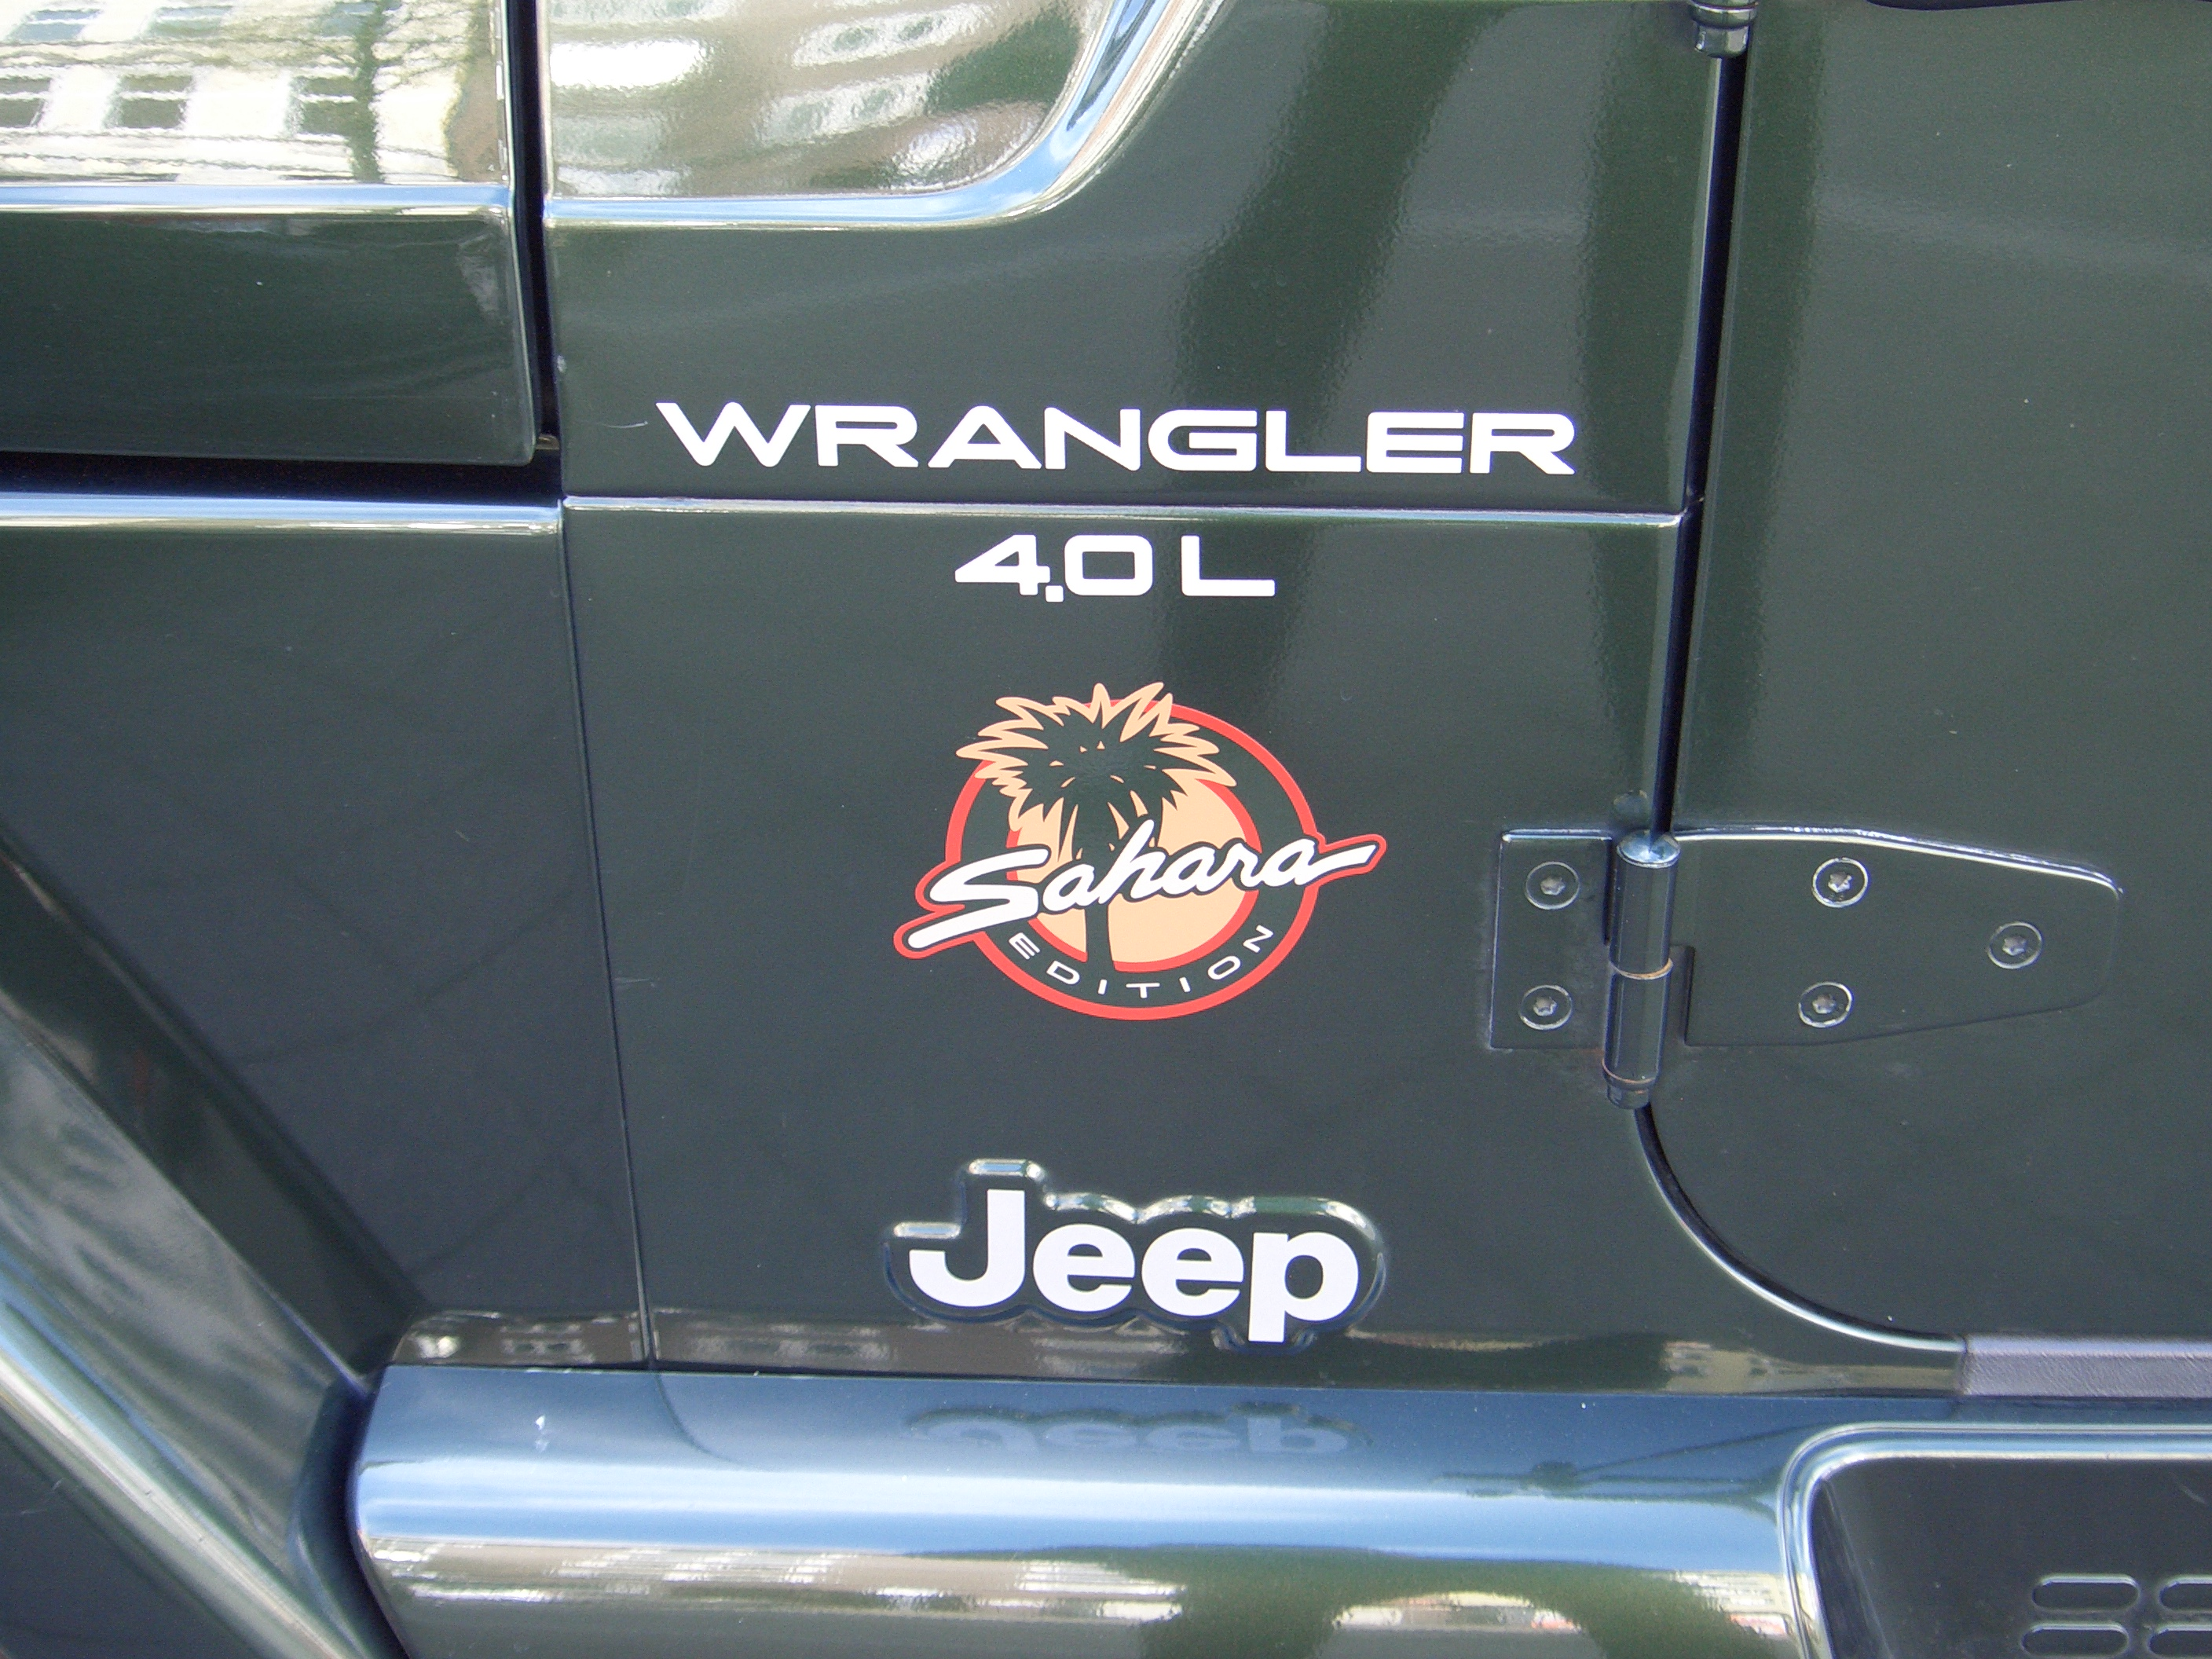 Jeep Wrangler Tj Build >> File:Jeep Wrangler 4.0L Sahara TJ 1997-2006 badge ...